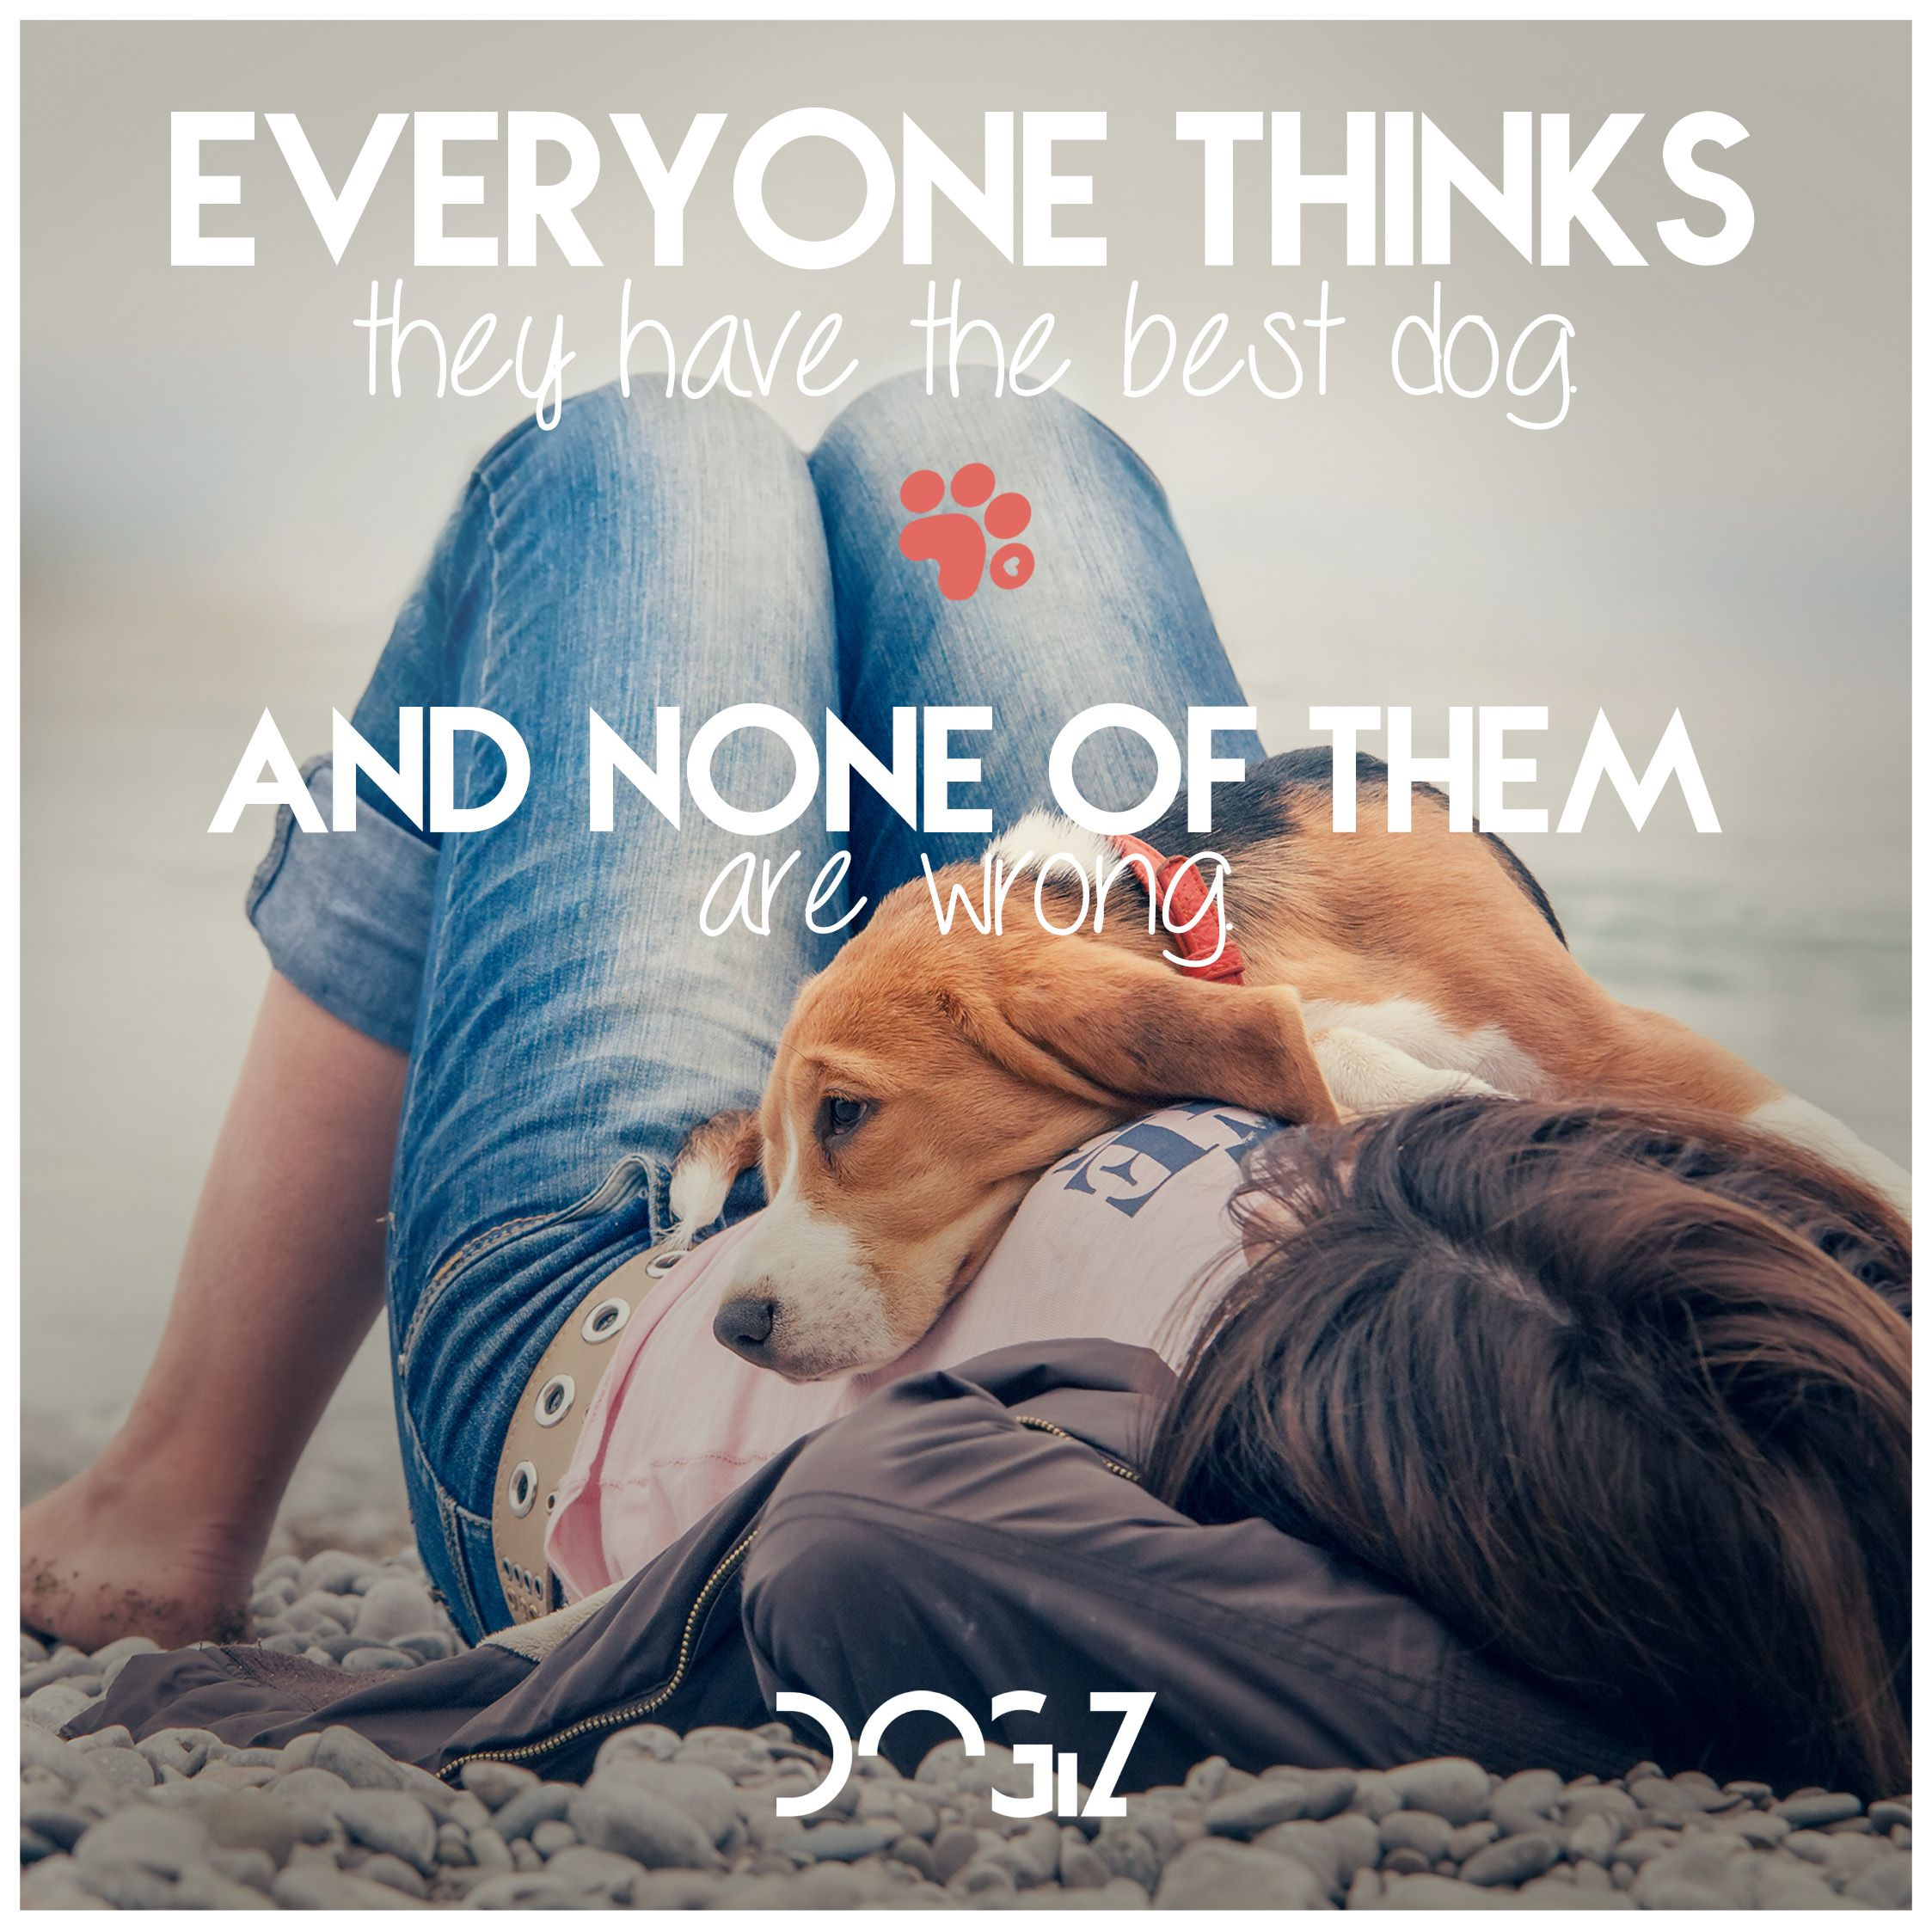 Everyone Thinks They Have The Best Dog. And None Of Them Are Wrong. #friends  #firendship #dogs #dog #quote #dogquote #animals #pets #quotes  #animalquotes ...